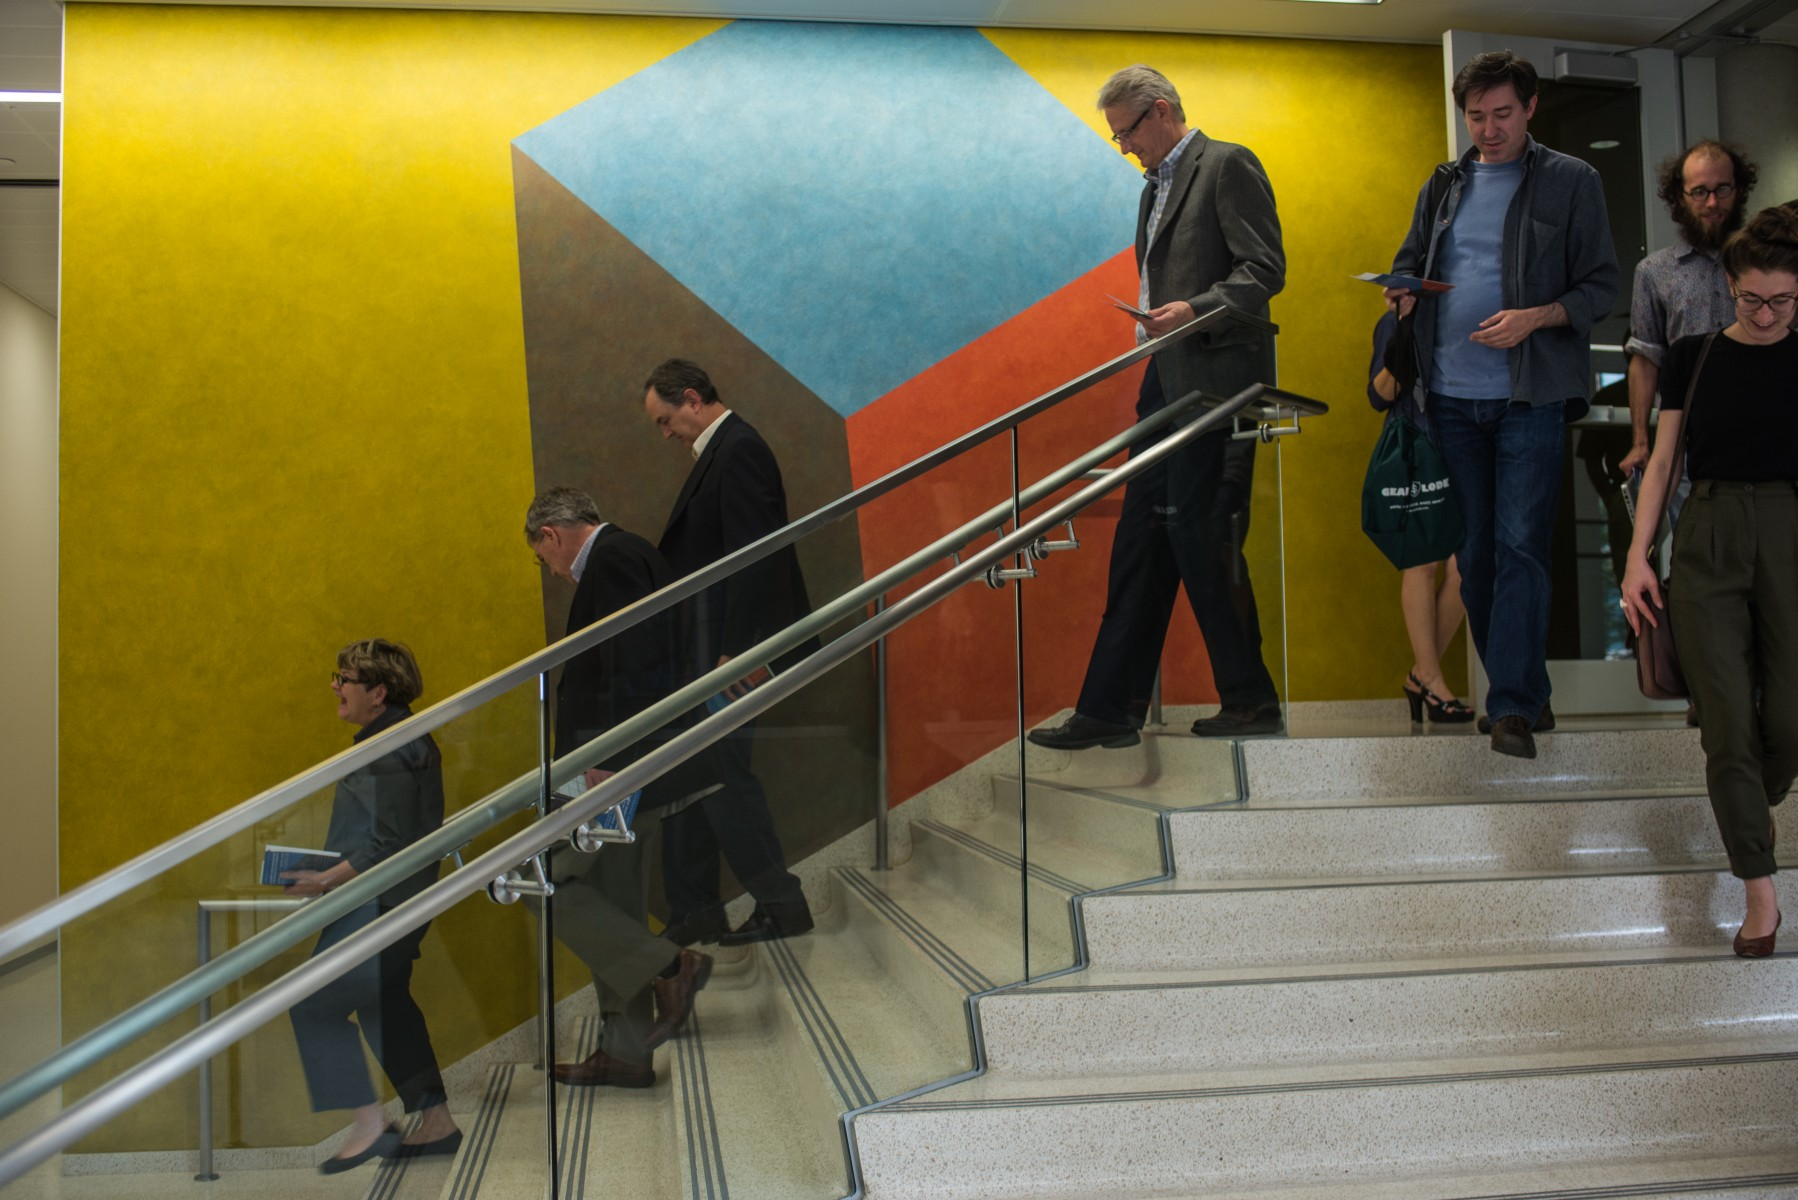 people walking down stairs in front of colored wall